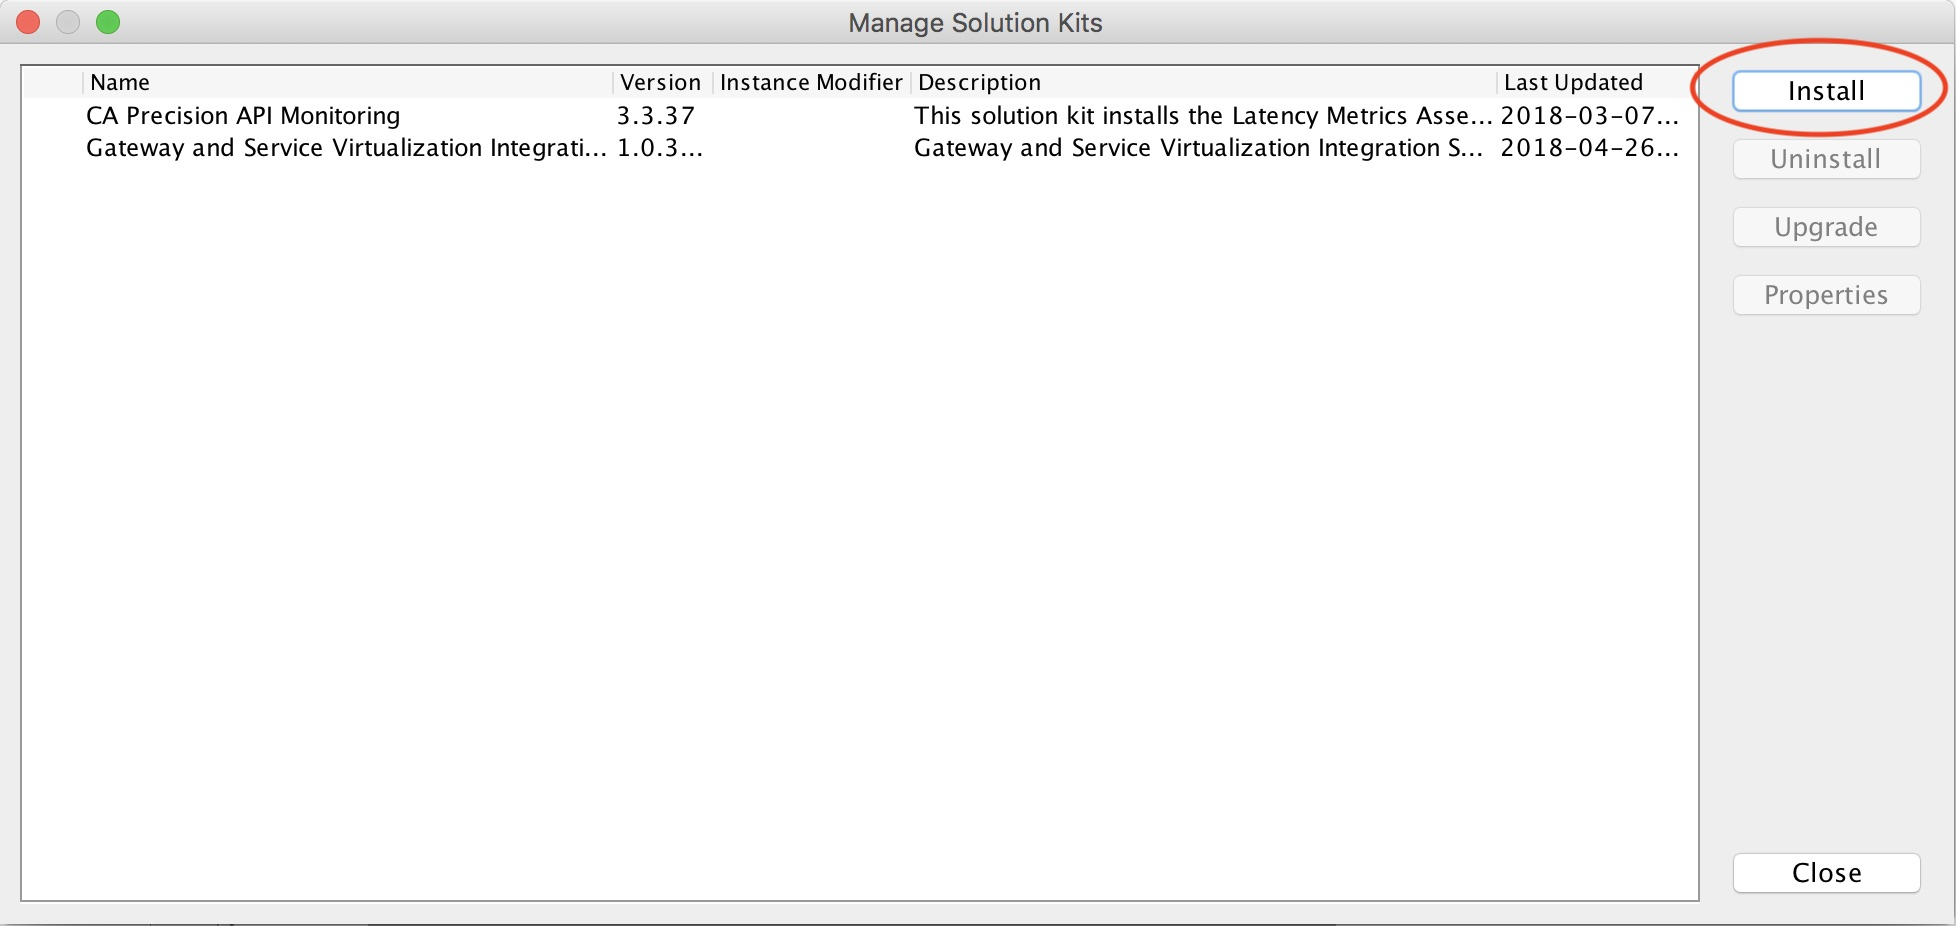 CA API Gateway showing the Manage Solution Kit dialog option